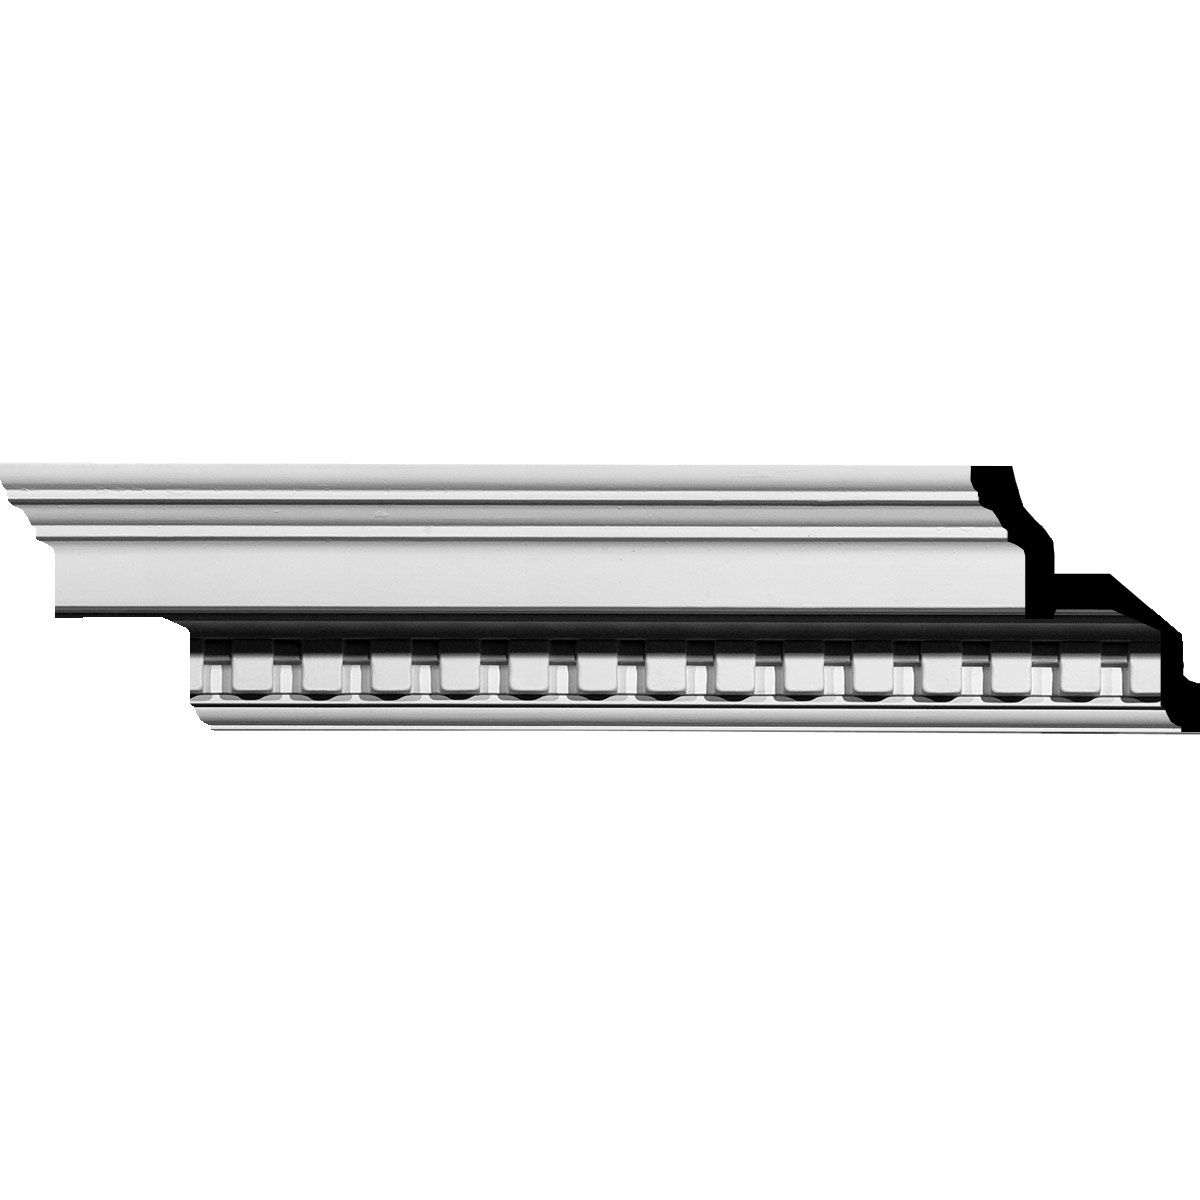 4 inch crown molding - Mld04x04x06de 25 50beautiful Crown Moulding Is A Great Way To Separate And Define Each Room